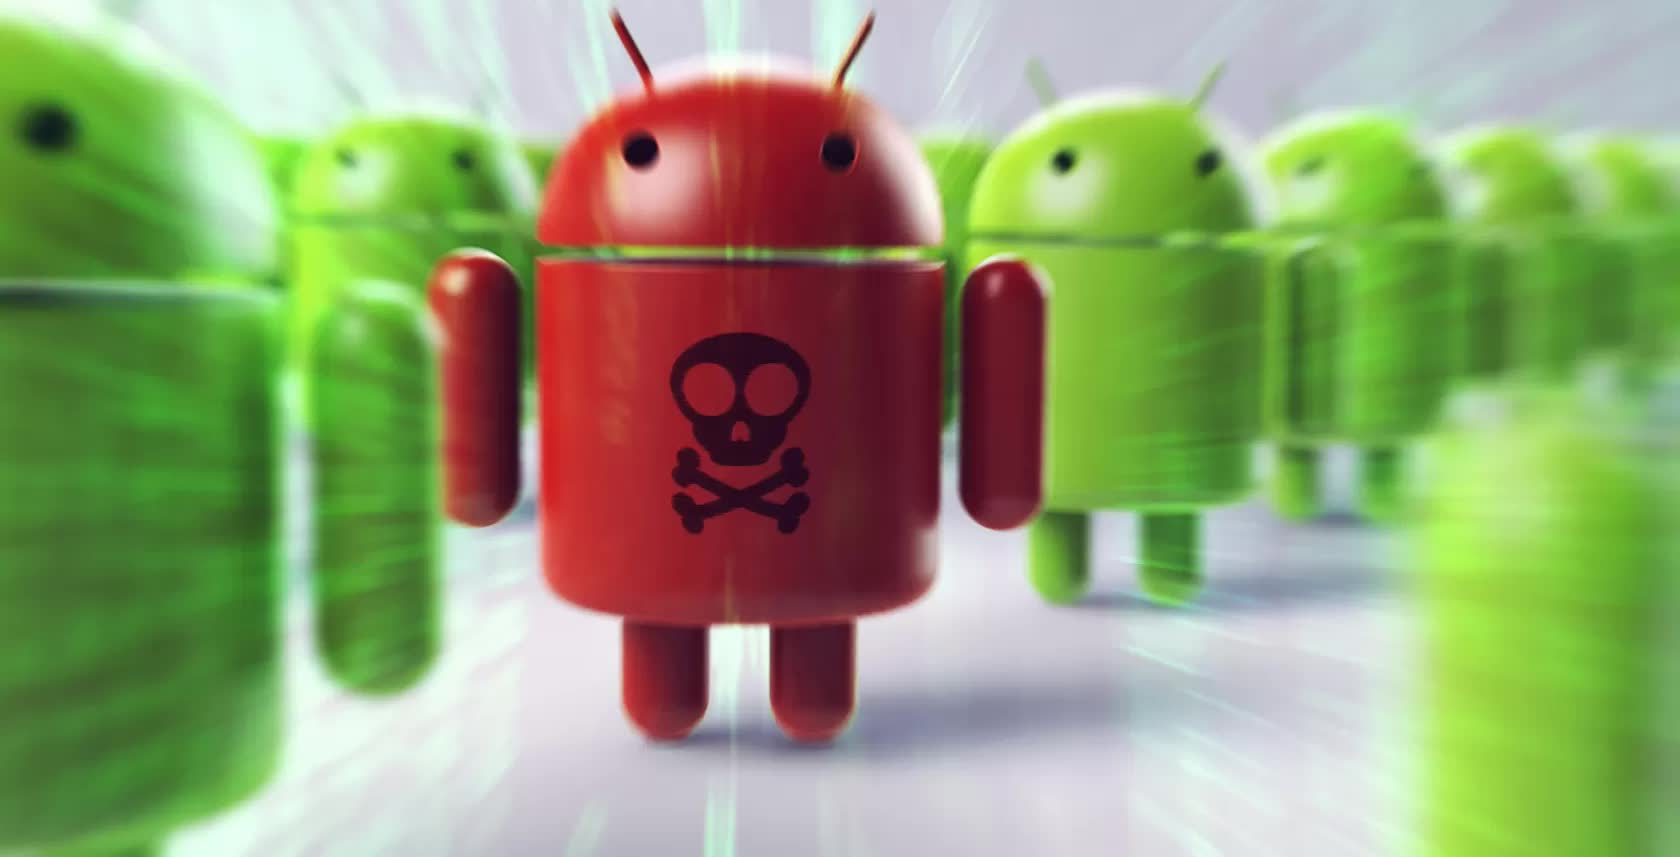 Qualcomm chips in hundreds of millions of Android phones have a critical security flaw